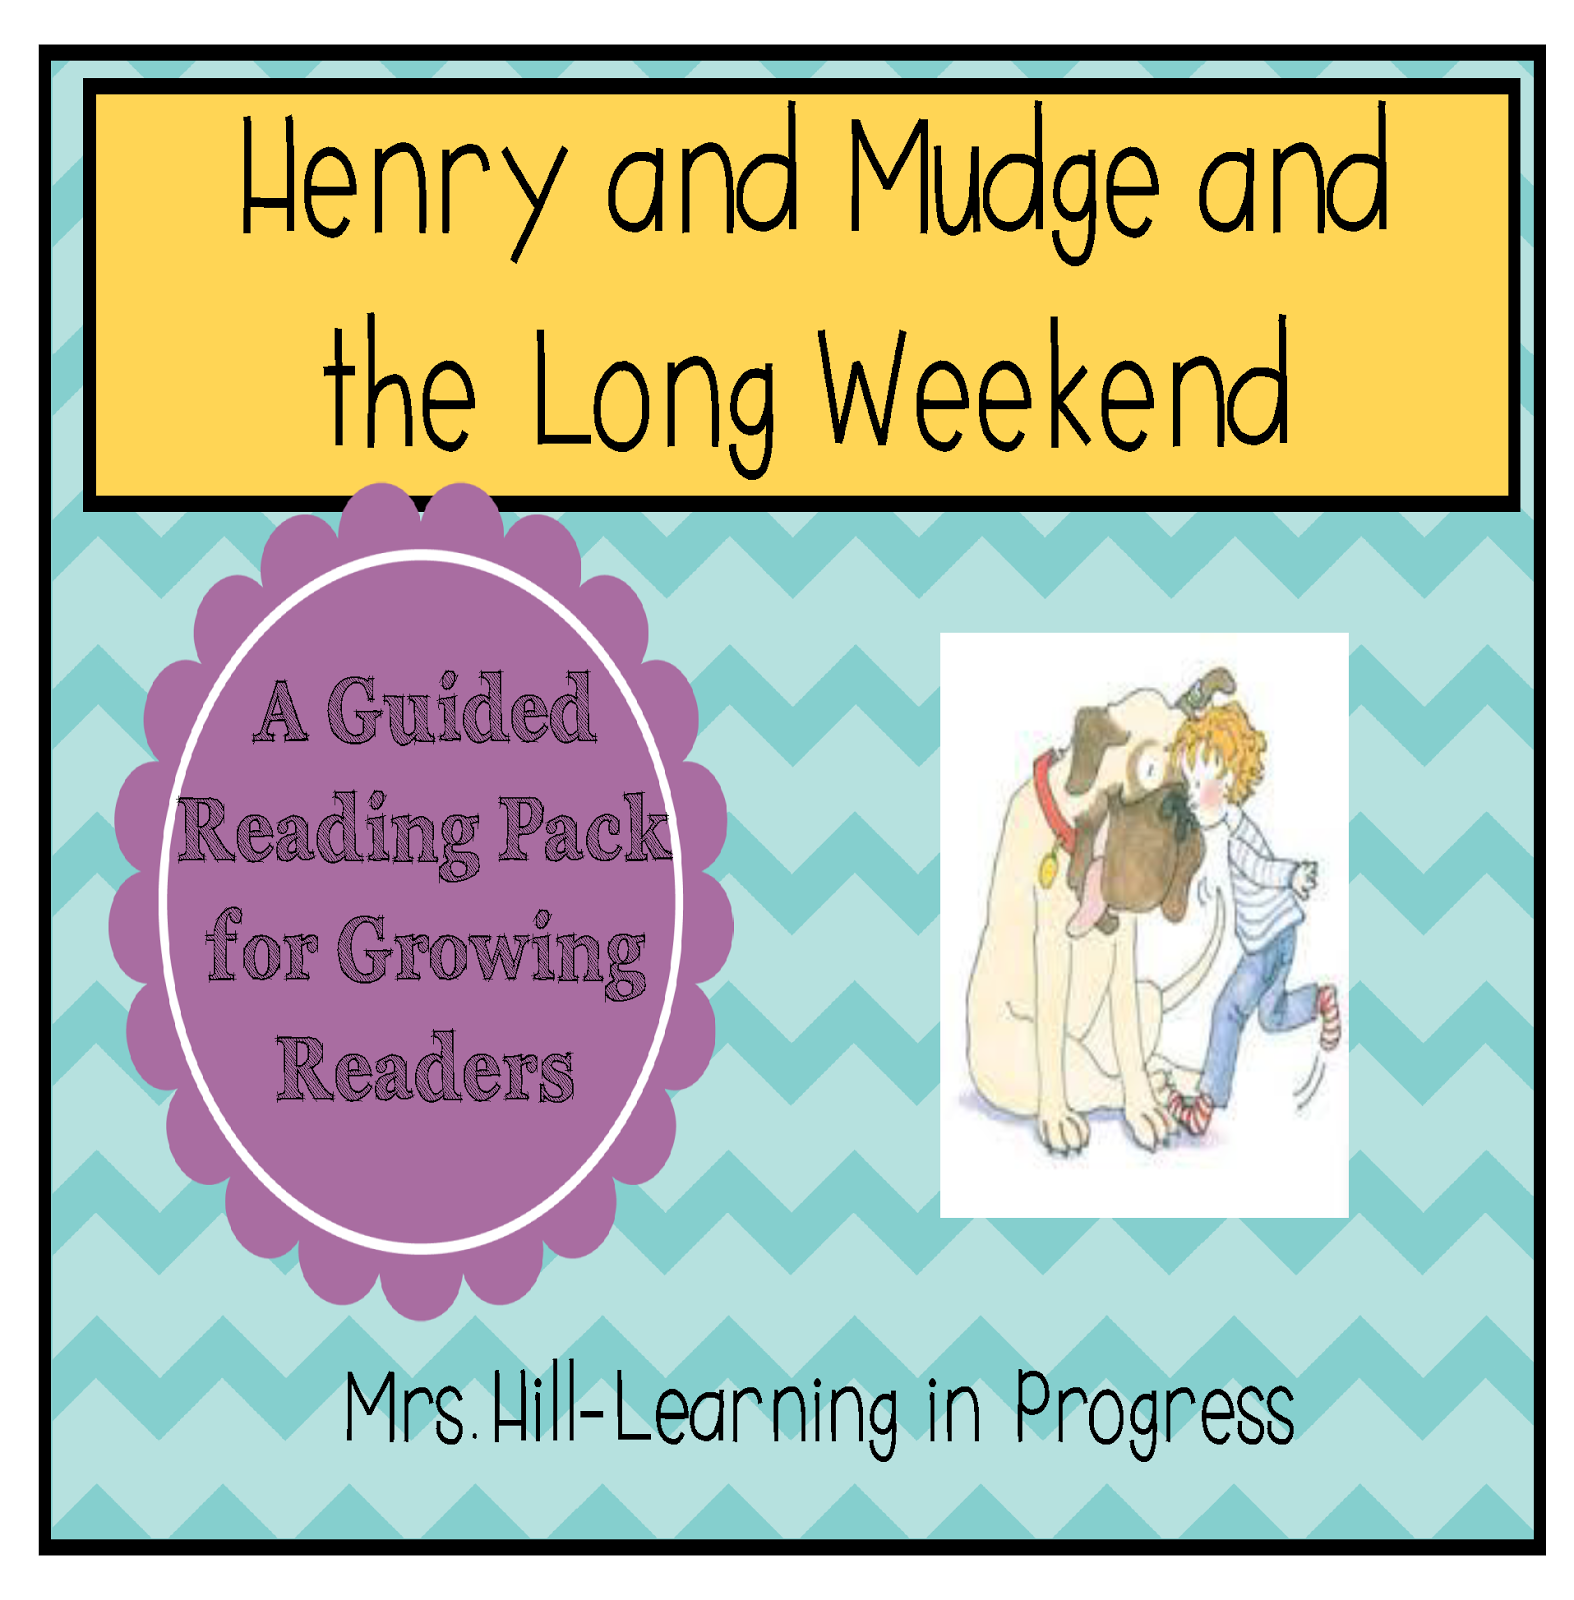 http://www.teacherspayteachers.com/Product/Henry-and-Mudge-and-the-Long-Weekend-Guided-Reading-for-Growing-Readers-1226334